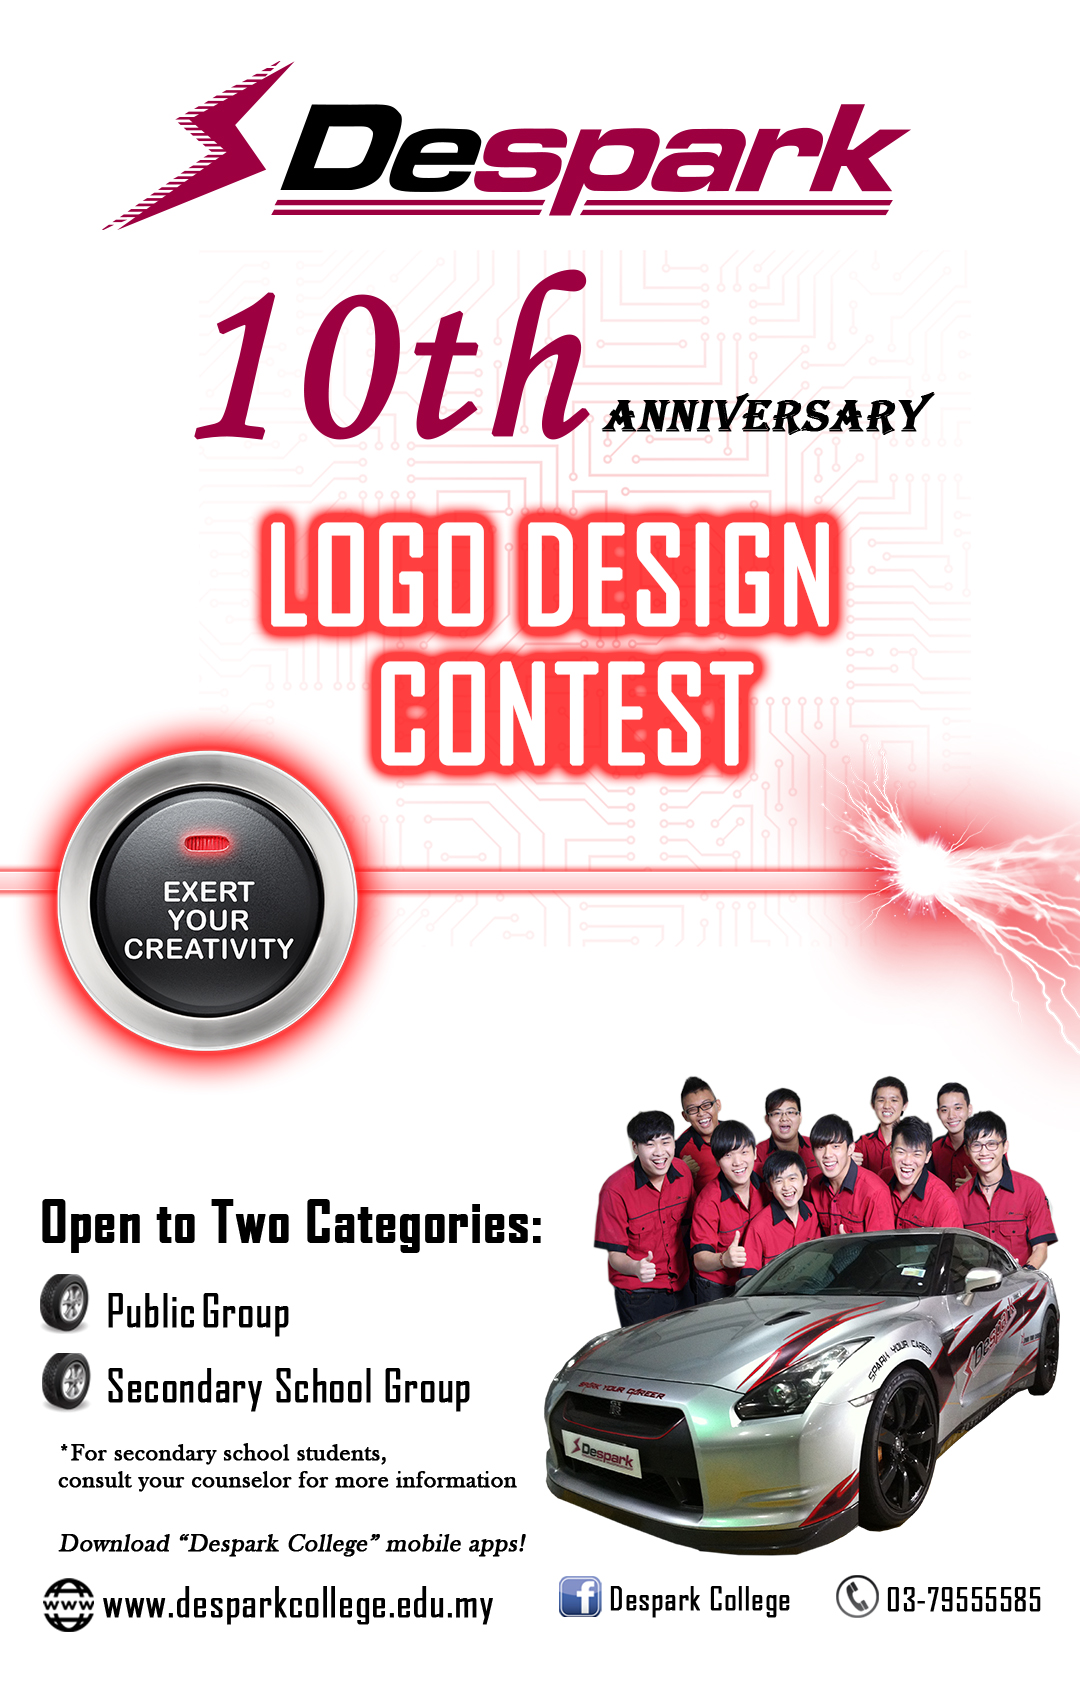 Logo Design Contest for secondary school